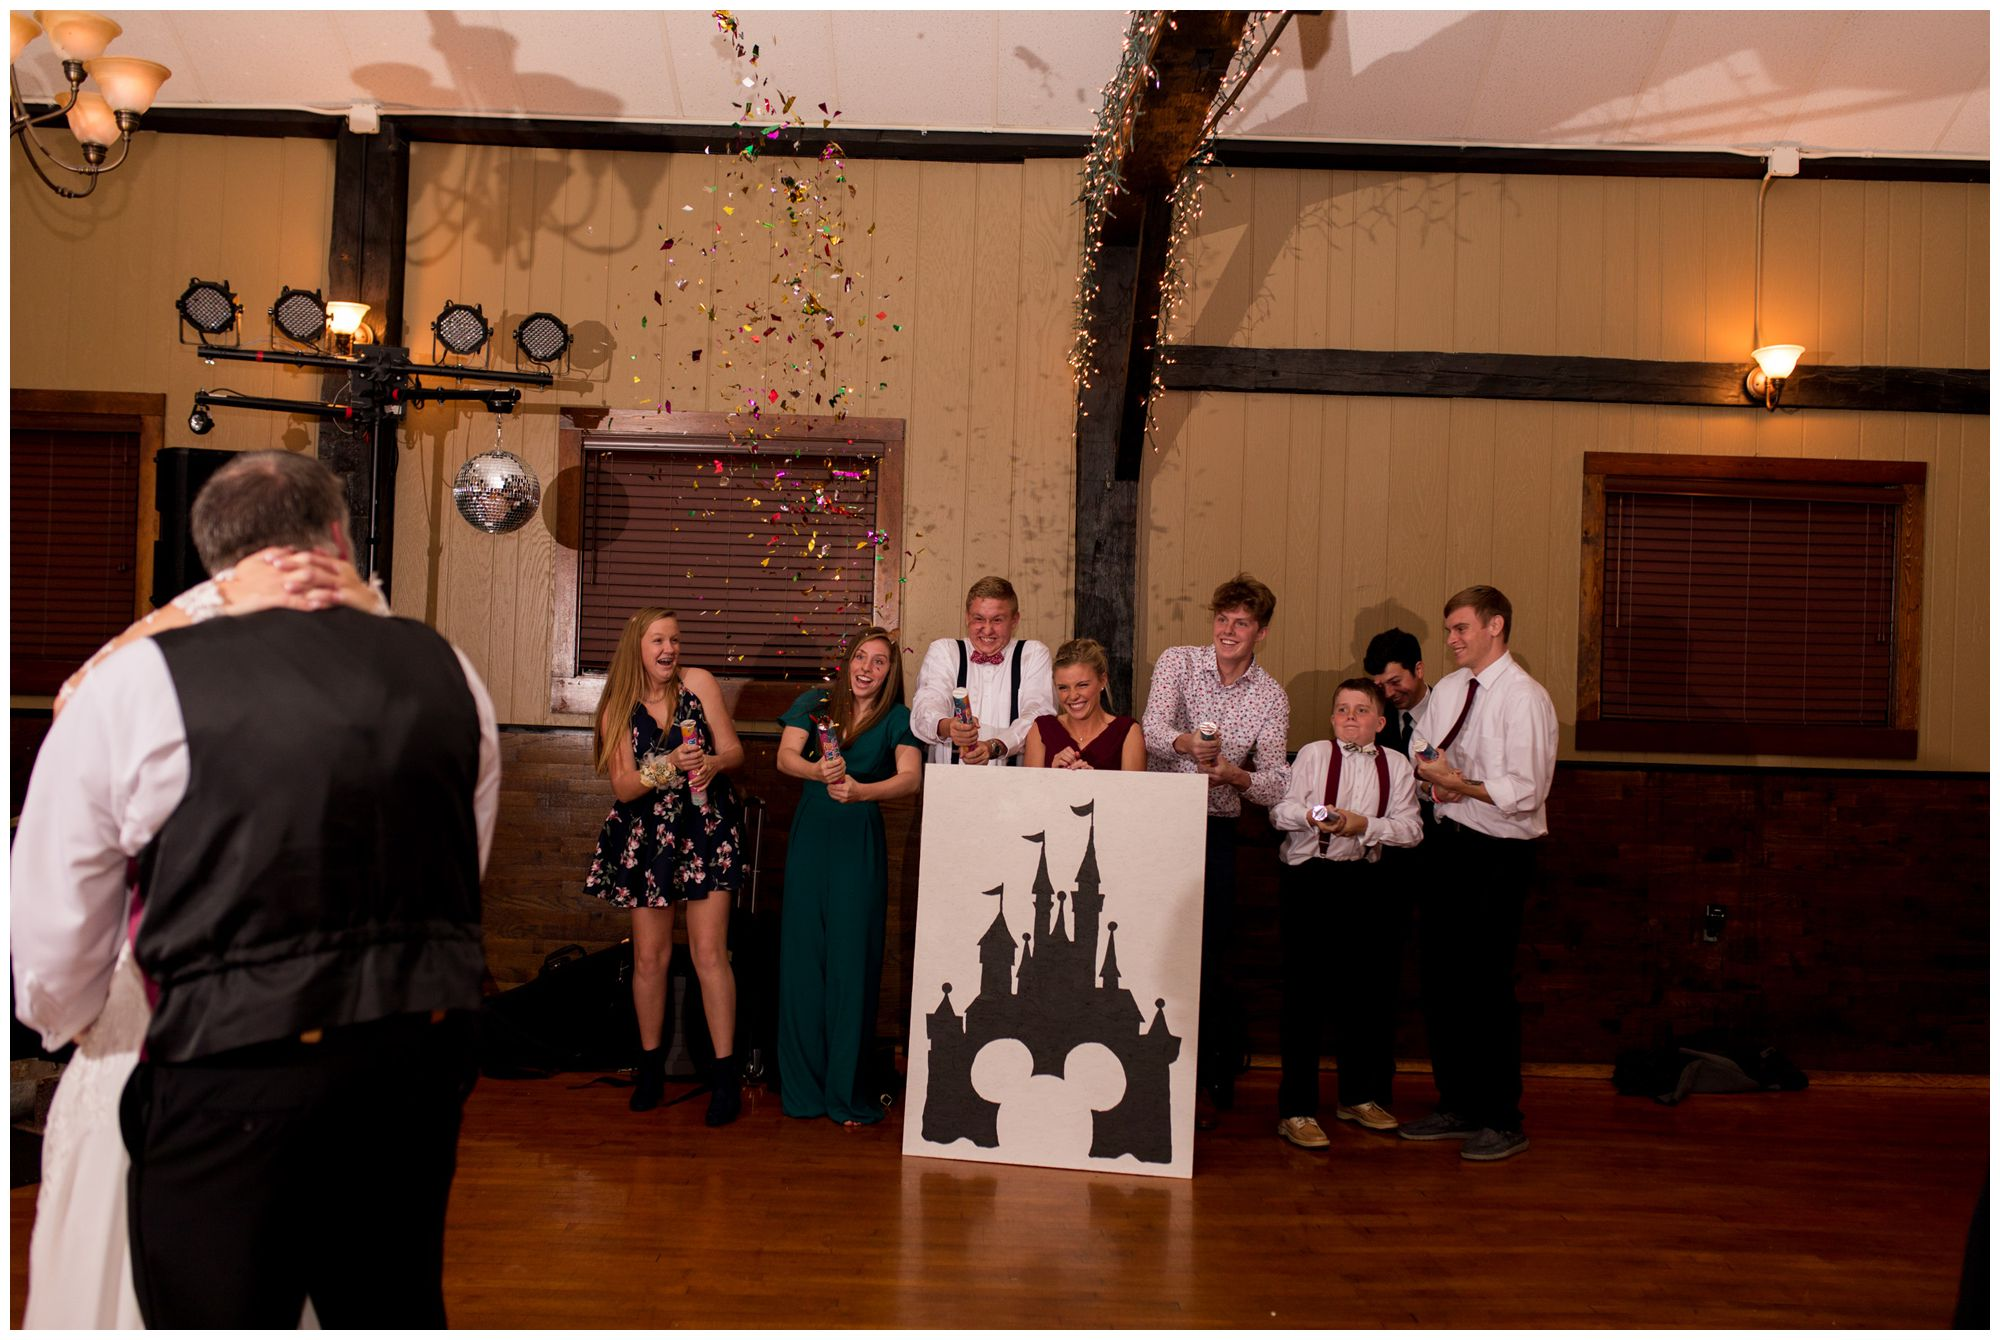 bride's siblings throw confetti during dance with her father at Goeglein Homestead